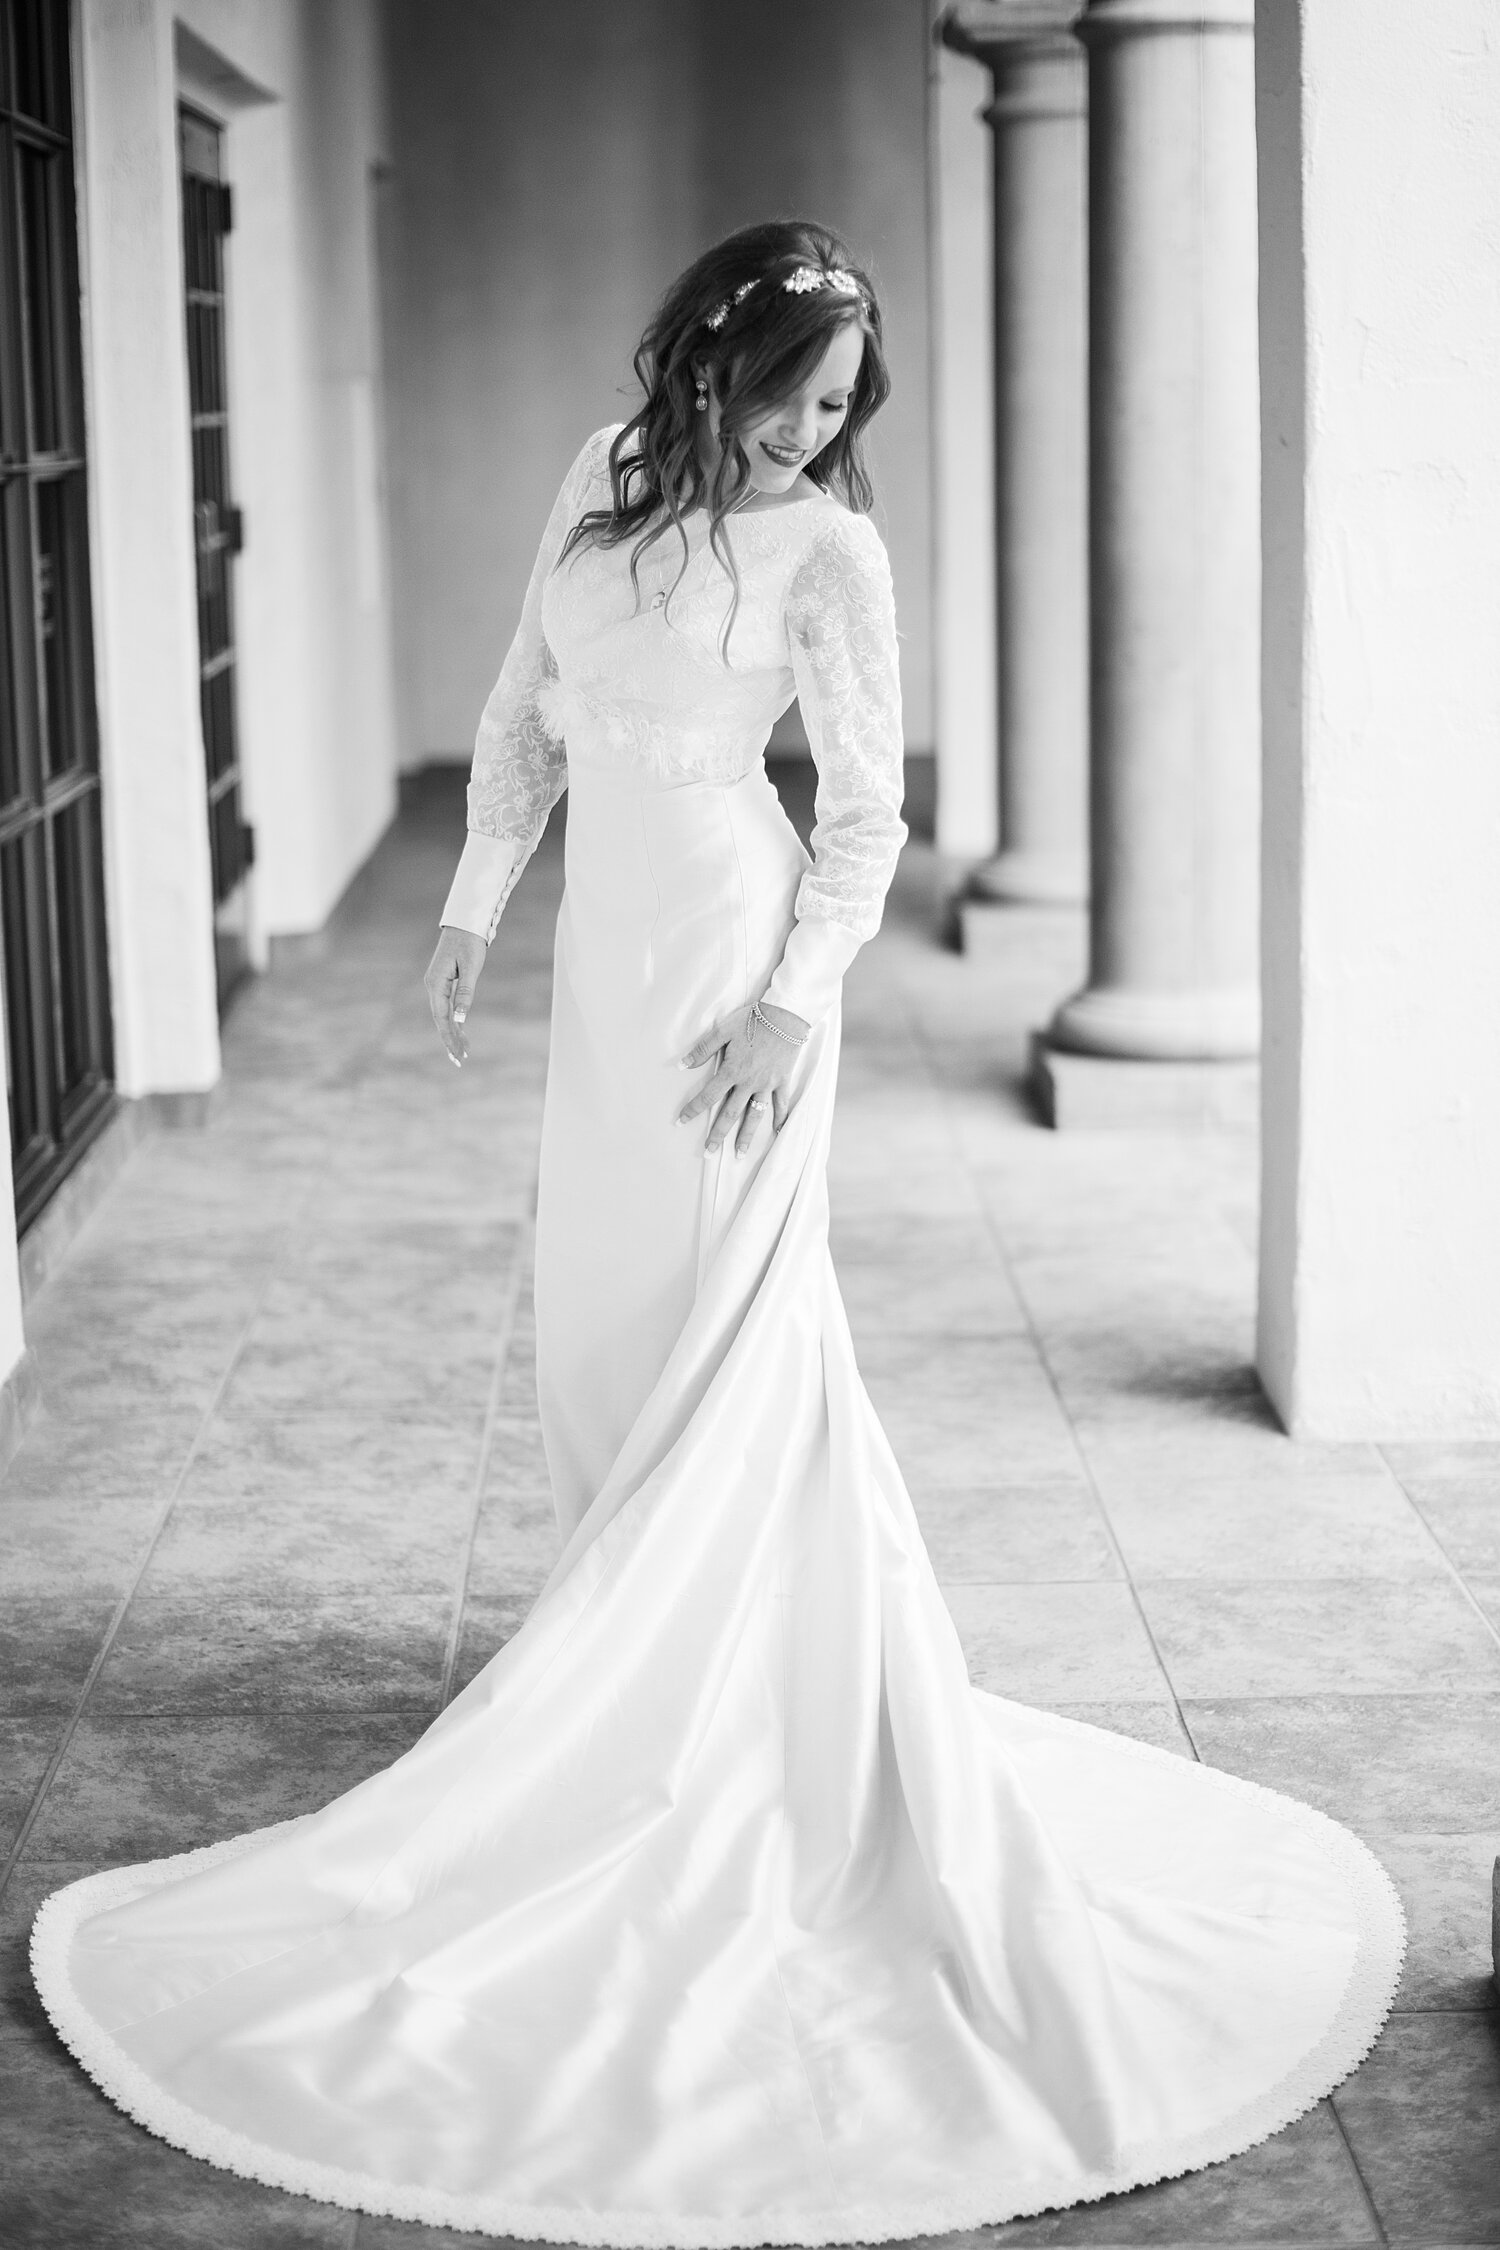 Vintage Wedding Dress Redesign And Reconstruction Alis Fashion Design Bespoke Wedding Dresses And Bridal Alterations